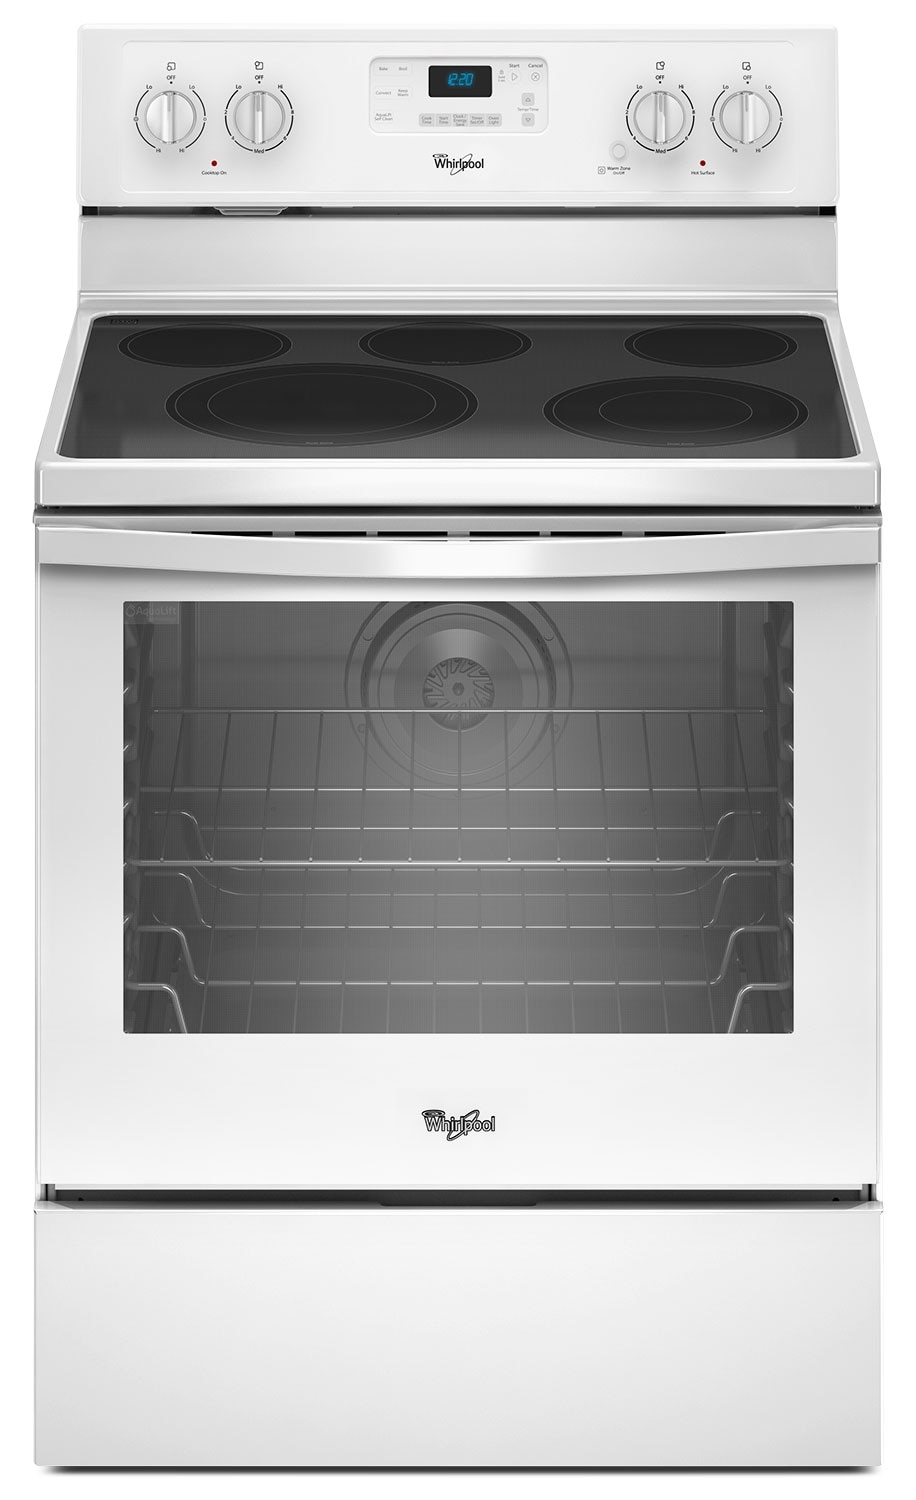 Whirlpool 6.4 Cu. Ft. Electric Range with AquaLift® Technology - White